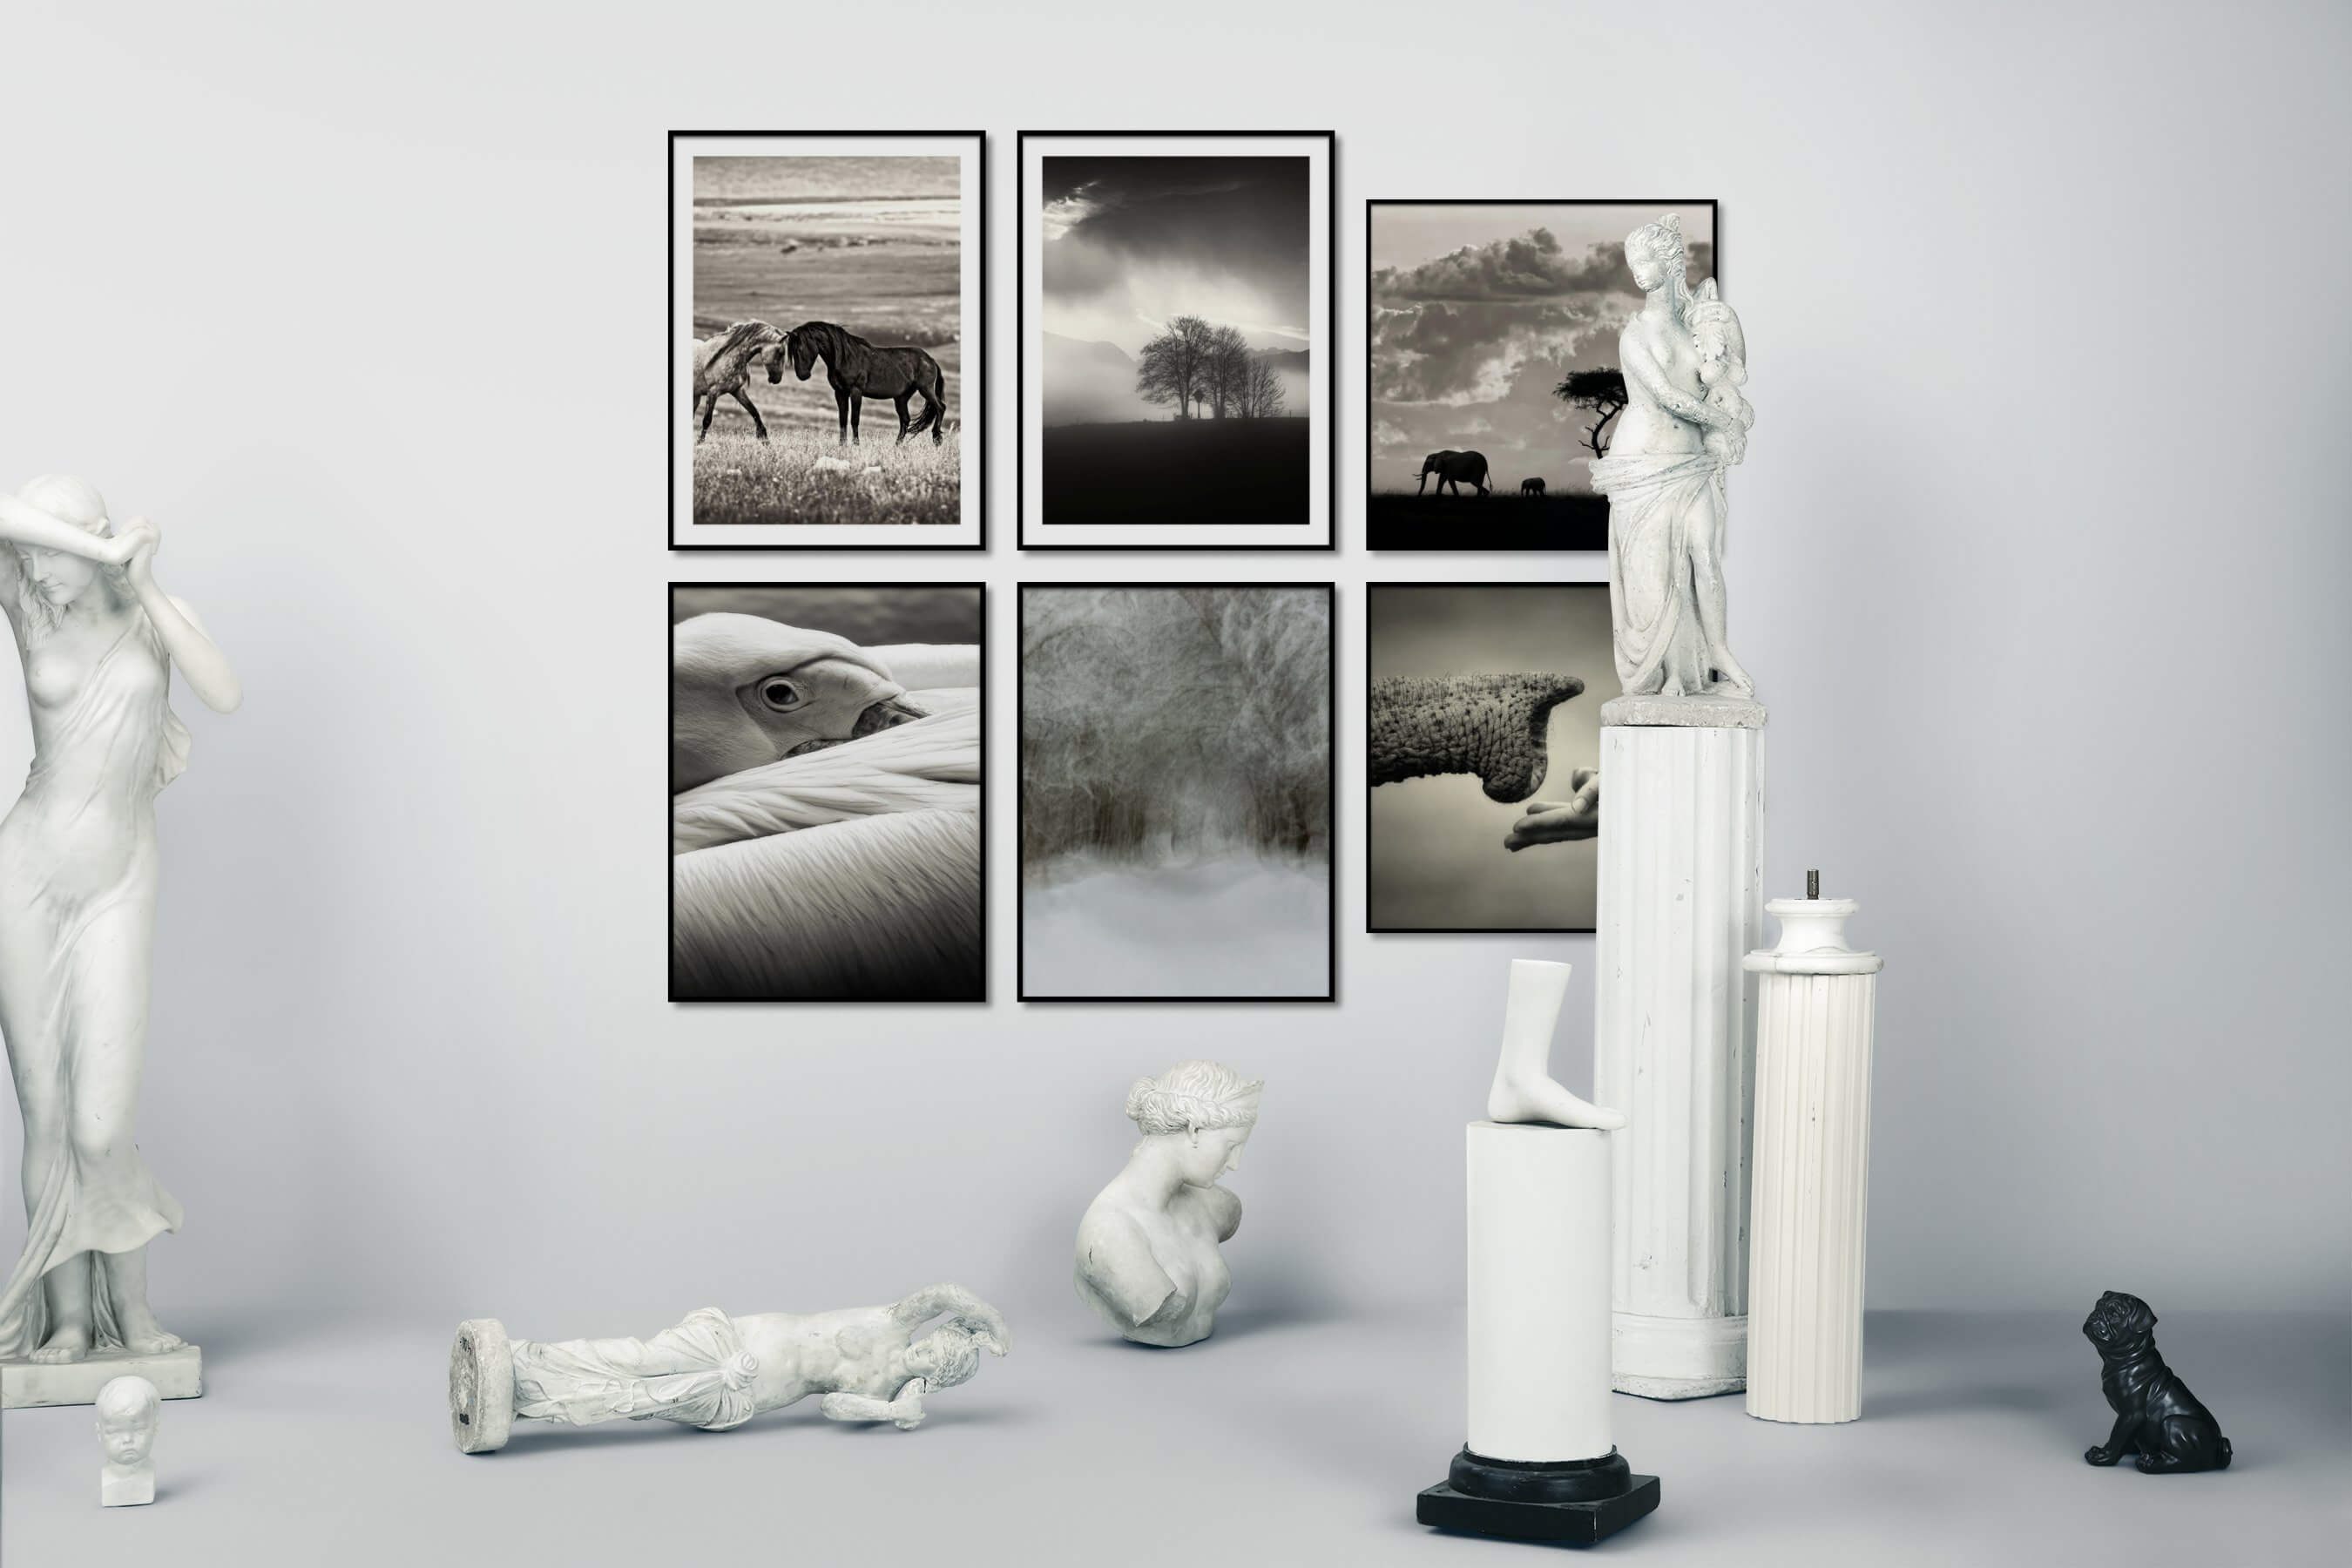 Gallery wall idea with six framed pictures arranged on a wall depicting Black & White, Animals, Country Life, and Nature